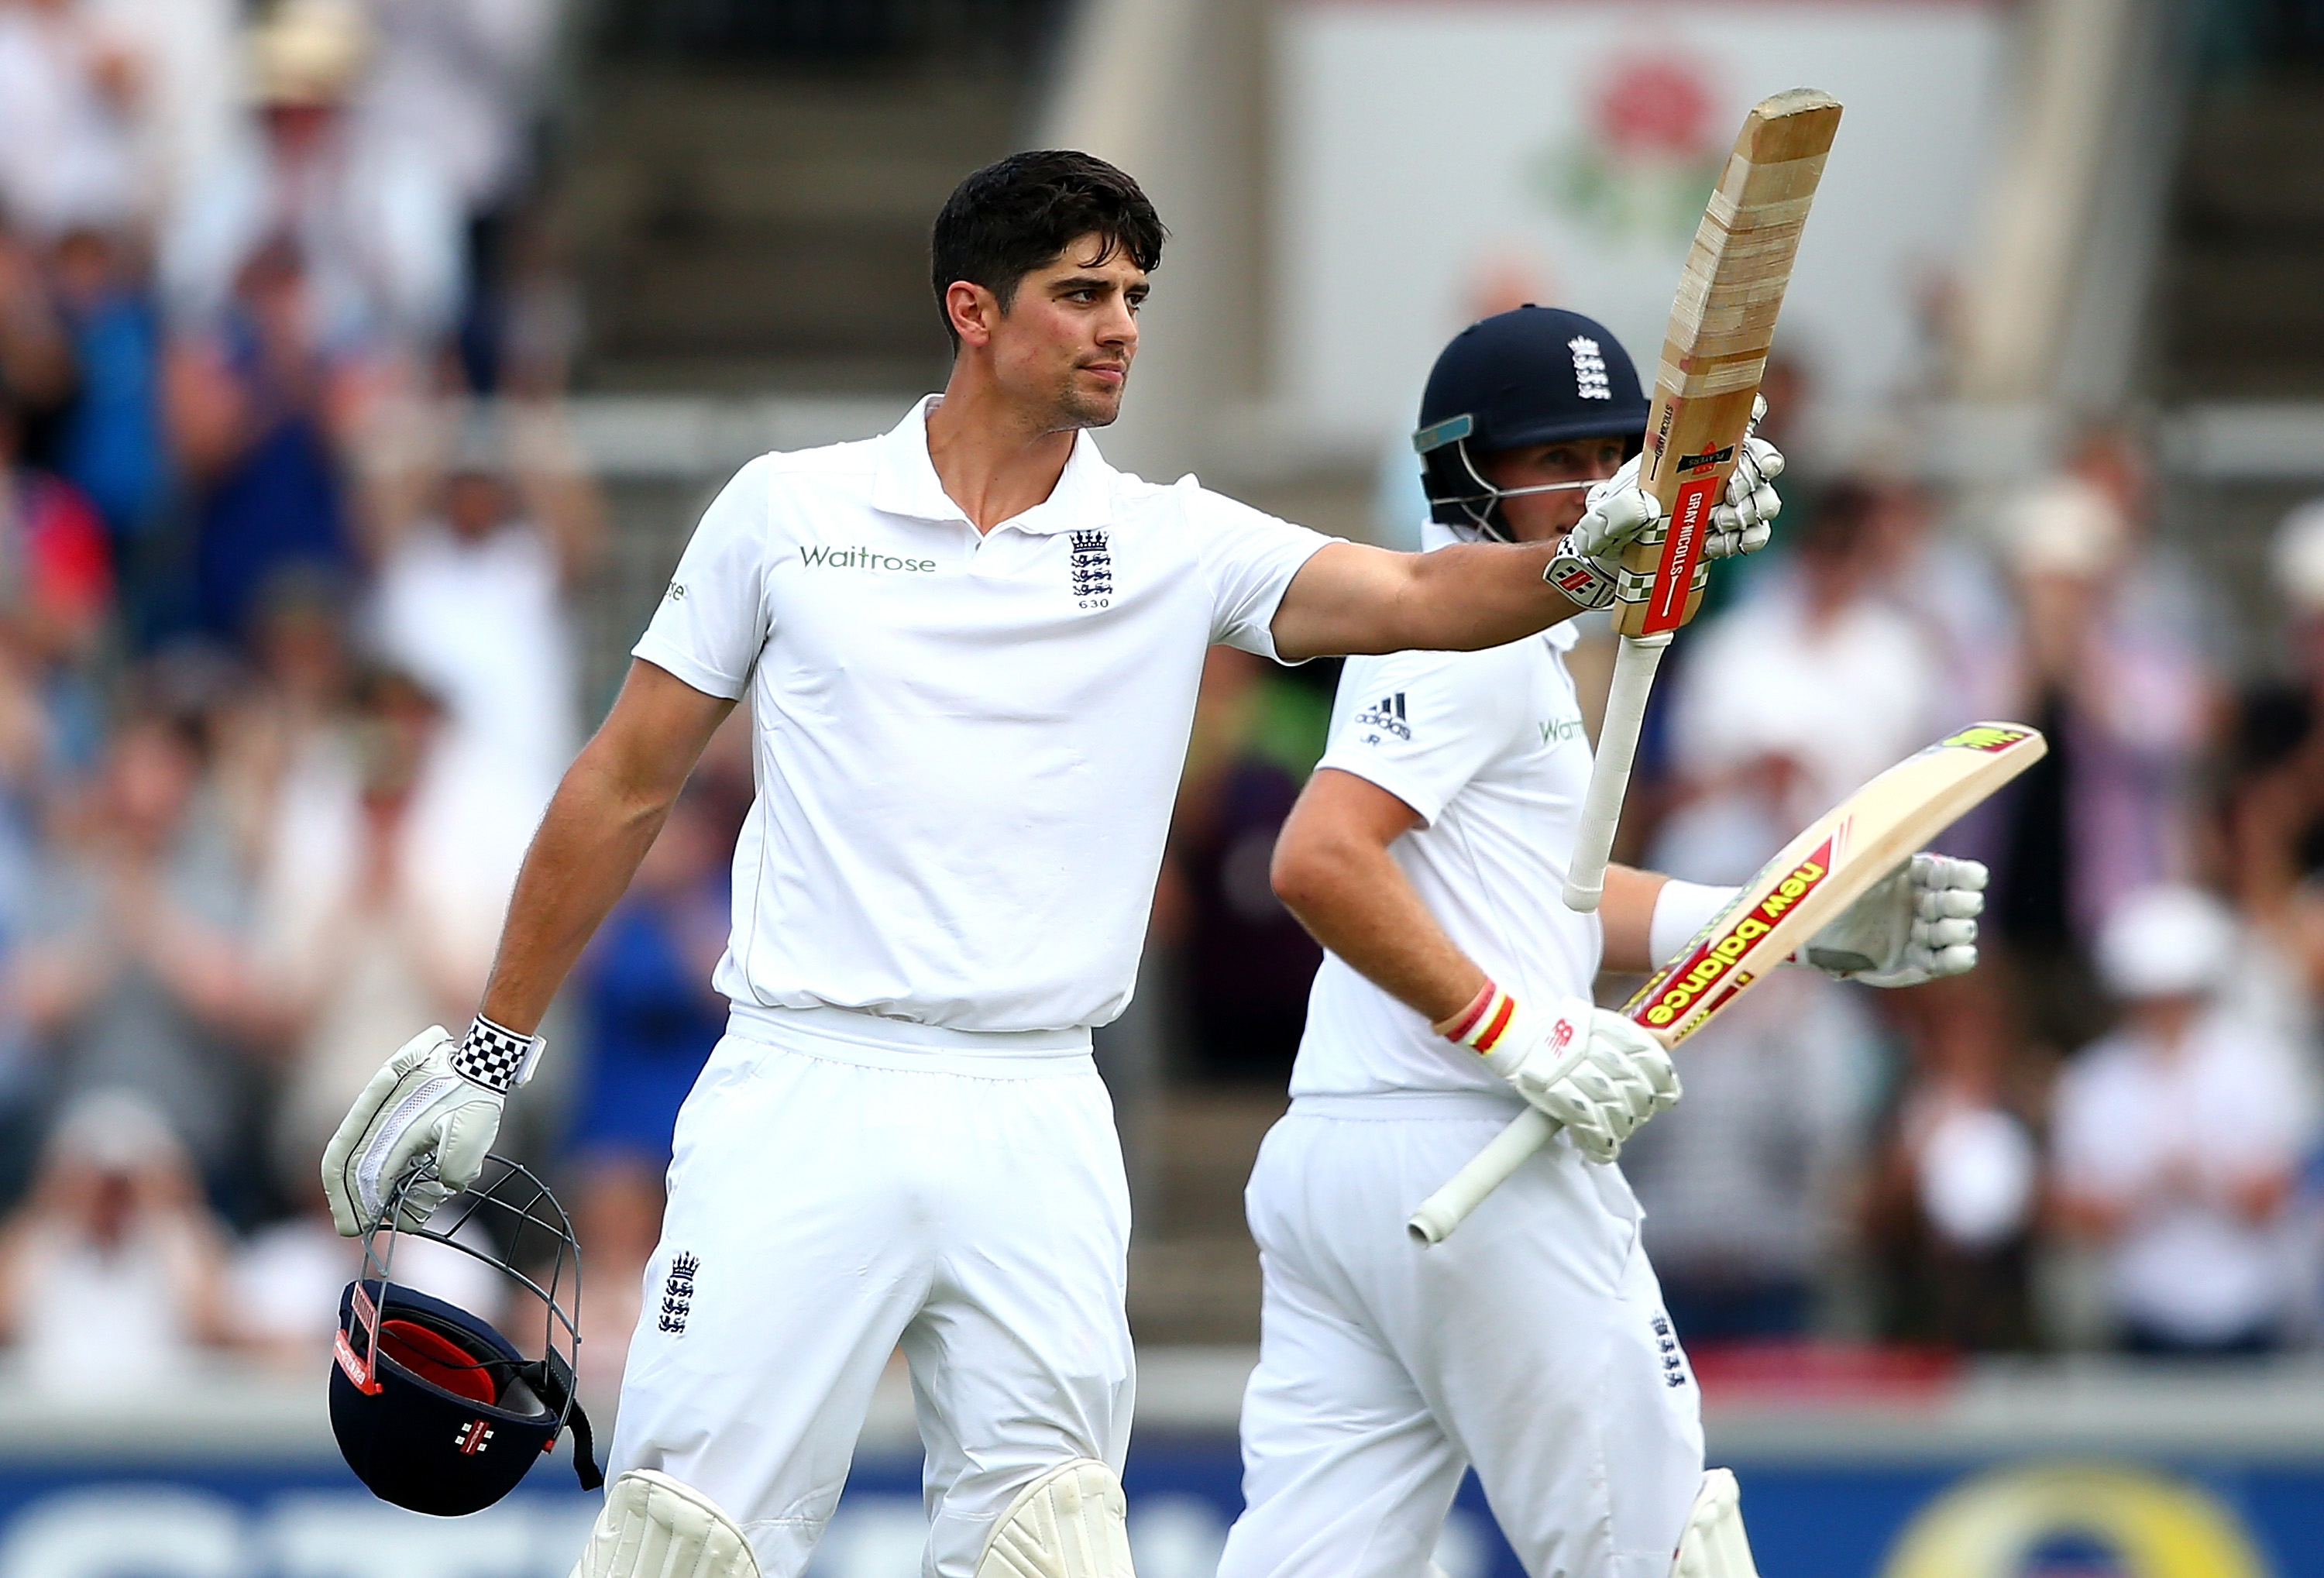 England vs Pakistan: Day 1 debrief as Alastair Cook equals Don Bradman with 29th Test century